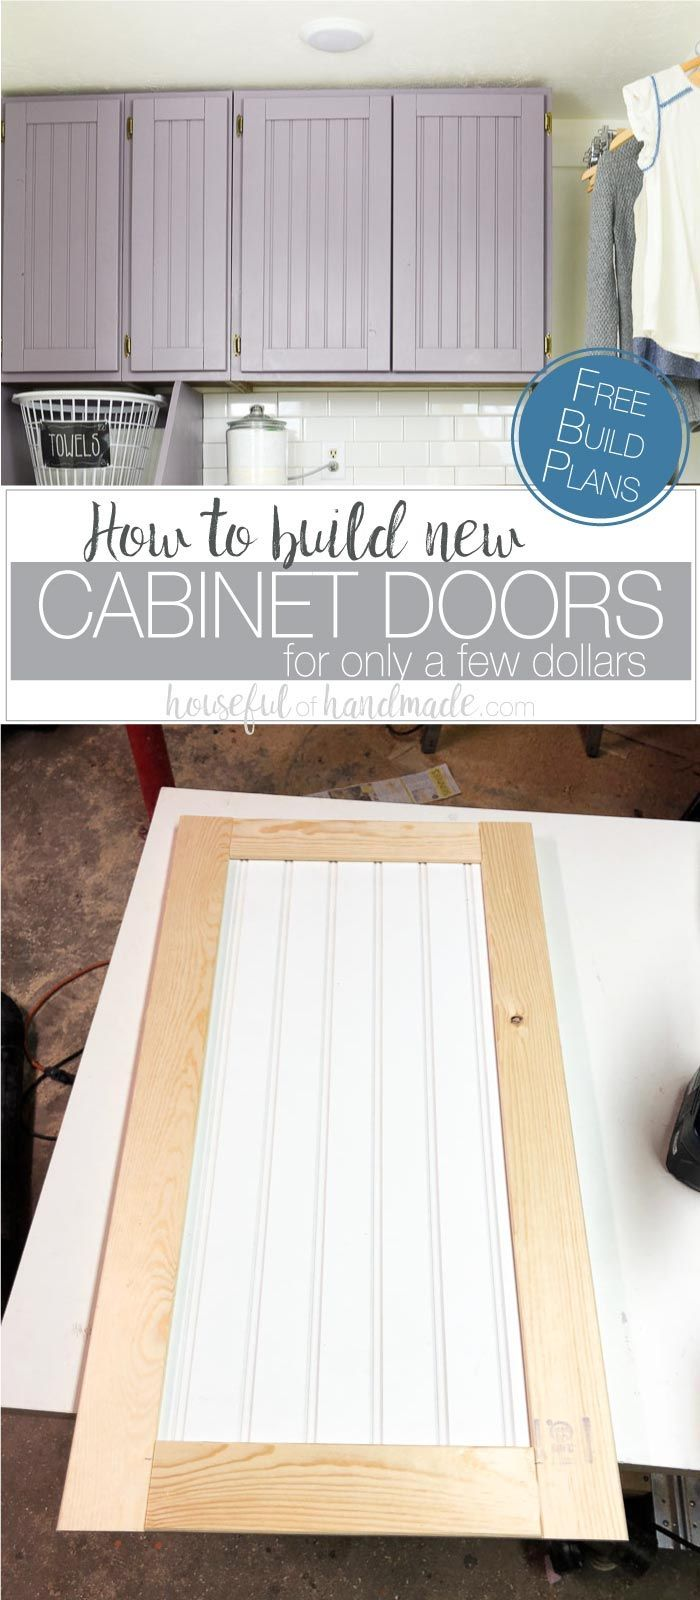 Best 25 Old Cabinet Doors Ideas On Pinterest Old Cabinets Cabinet Door Crafts And Diy